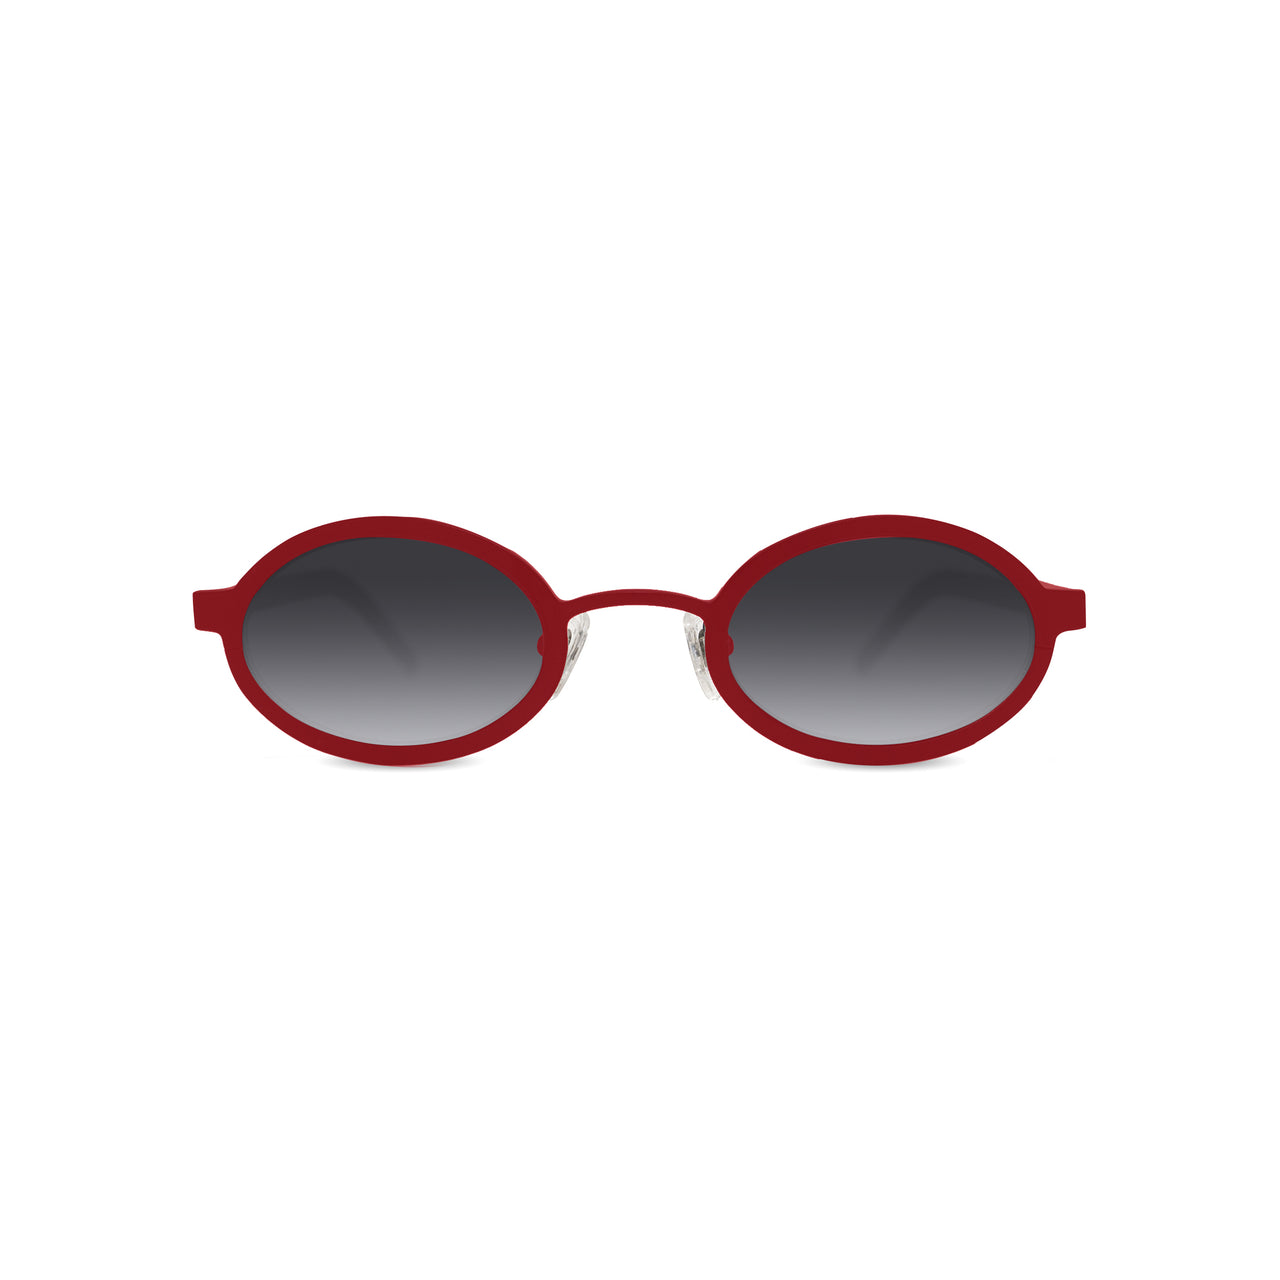 Metal. Gloss Scarlet. Black Mirror Lens. - BLYSZAK eyewear eyewear - eyewear, optical, sunglasses